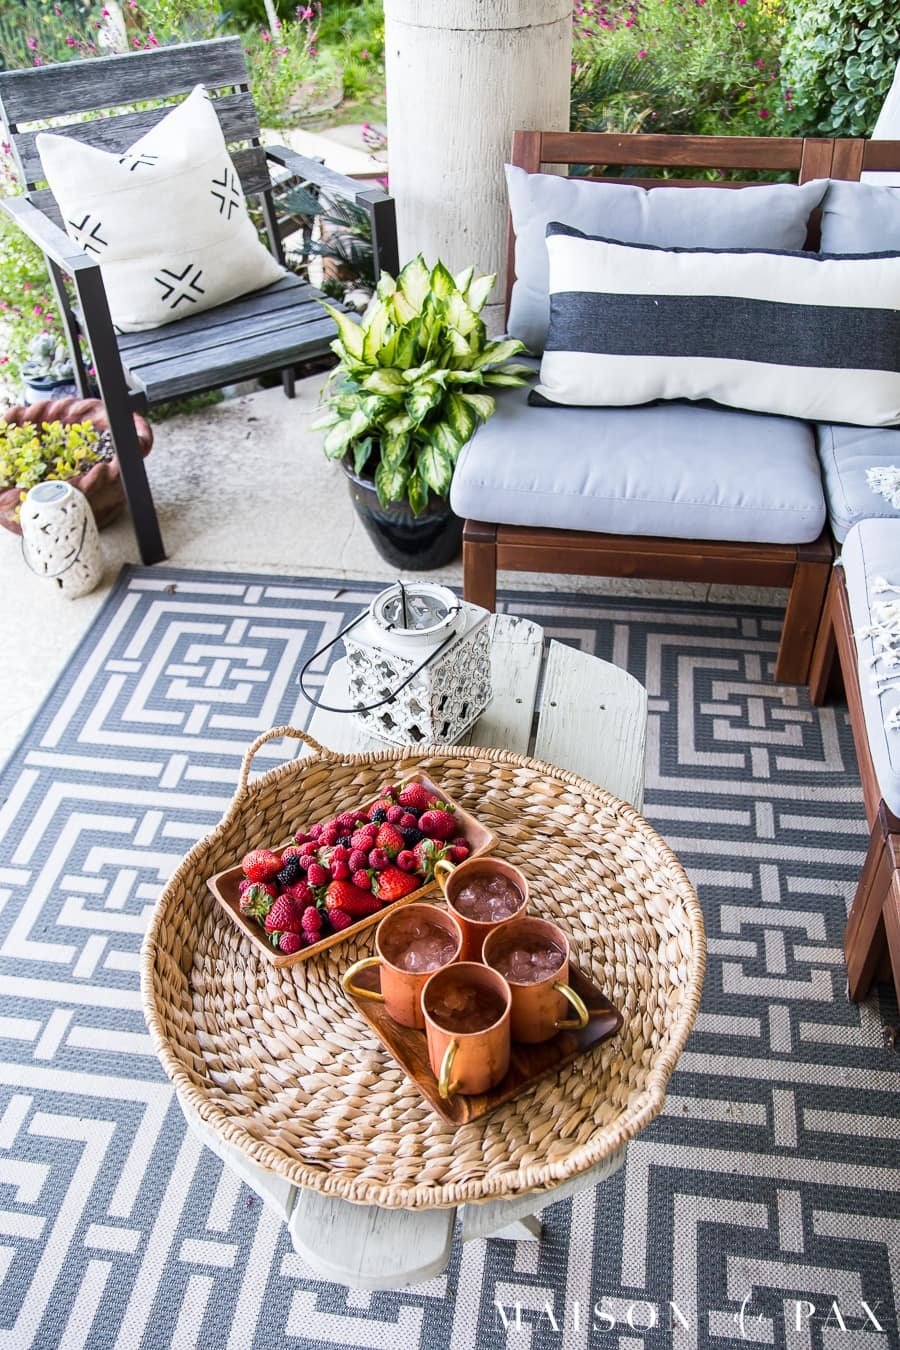 Copper mugs and outdoor living patio styled for summer- Maison de Pax